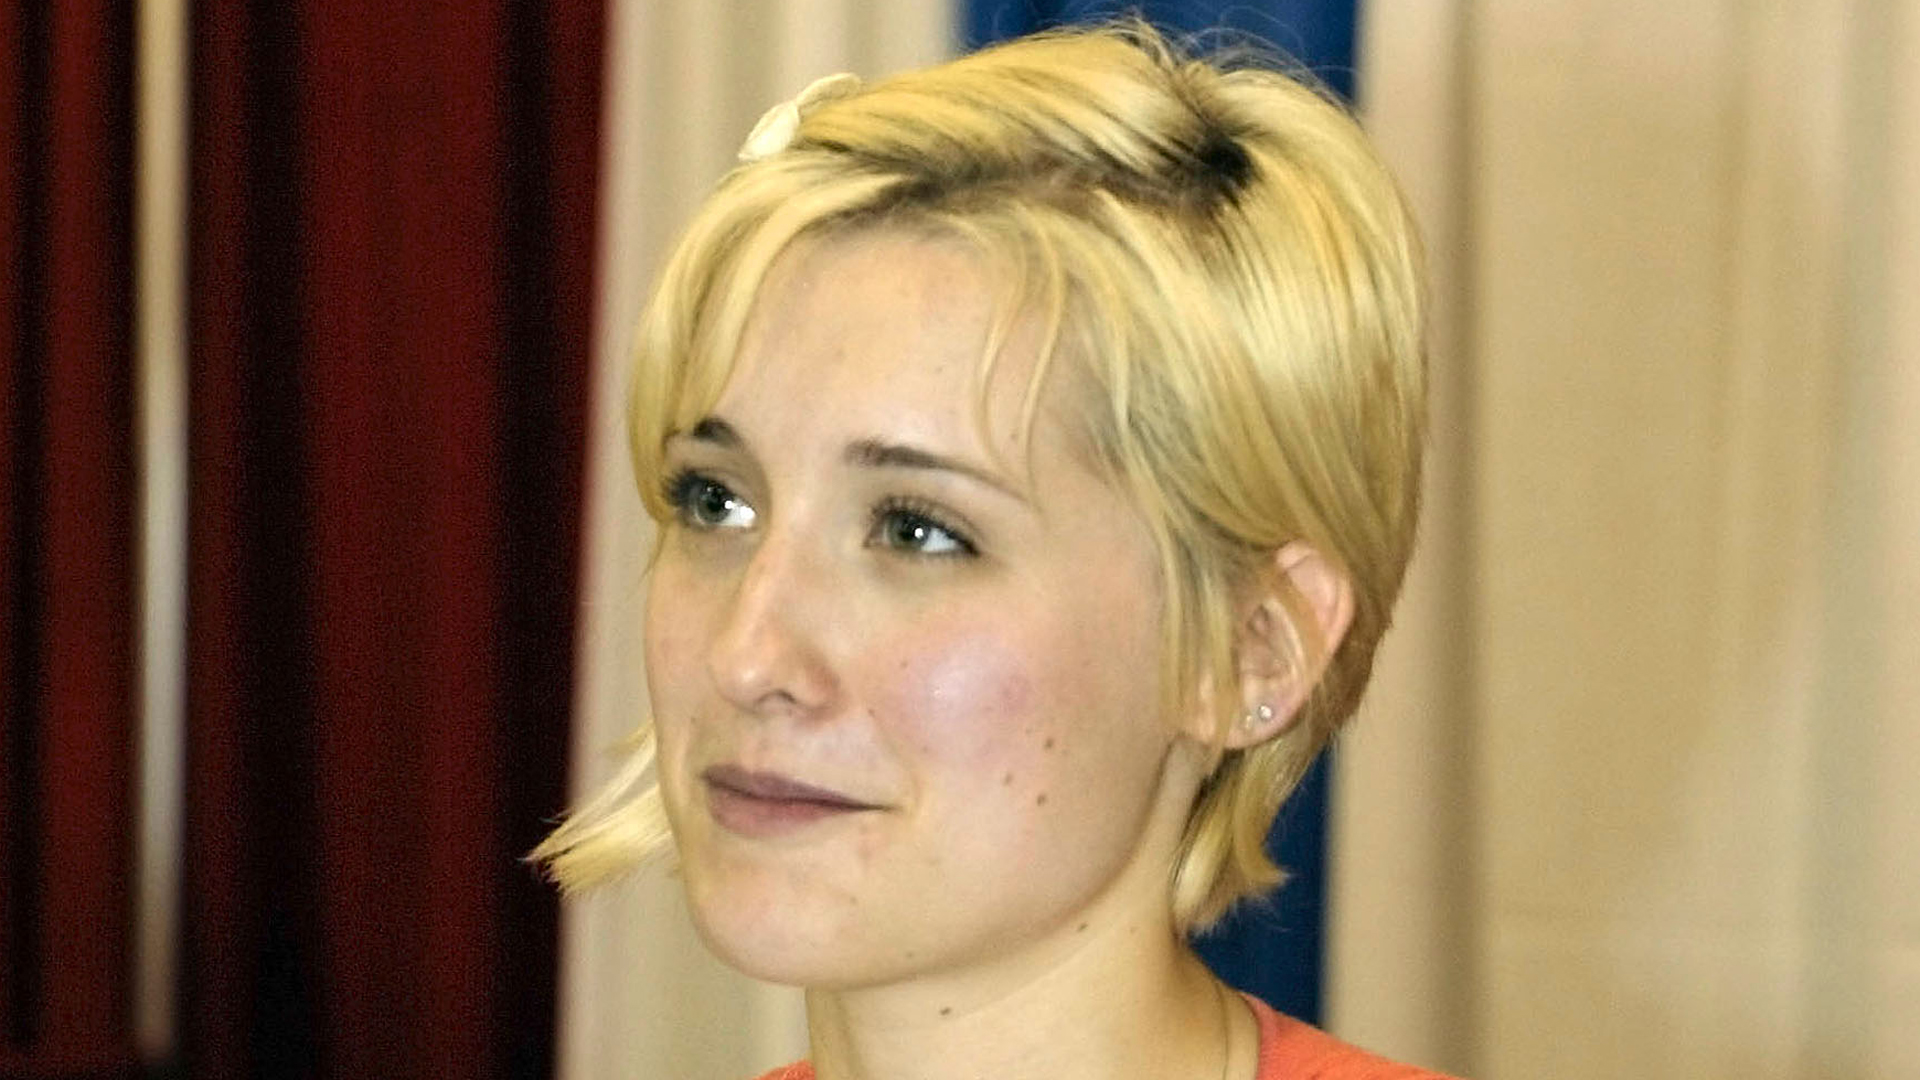 Allison Mack, star of 'Smallville,' signs autographs at the Wizard World East's second annual pop-culture expo at the Pennsylvania Convention Center June 1, 2003, in Philadelphia, Penn. (Credit: Don Murray/Getty Images)